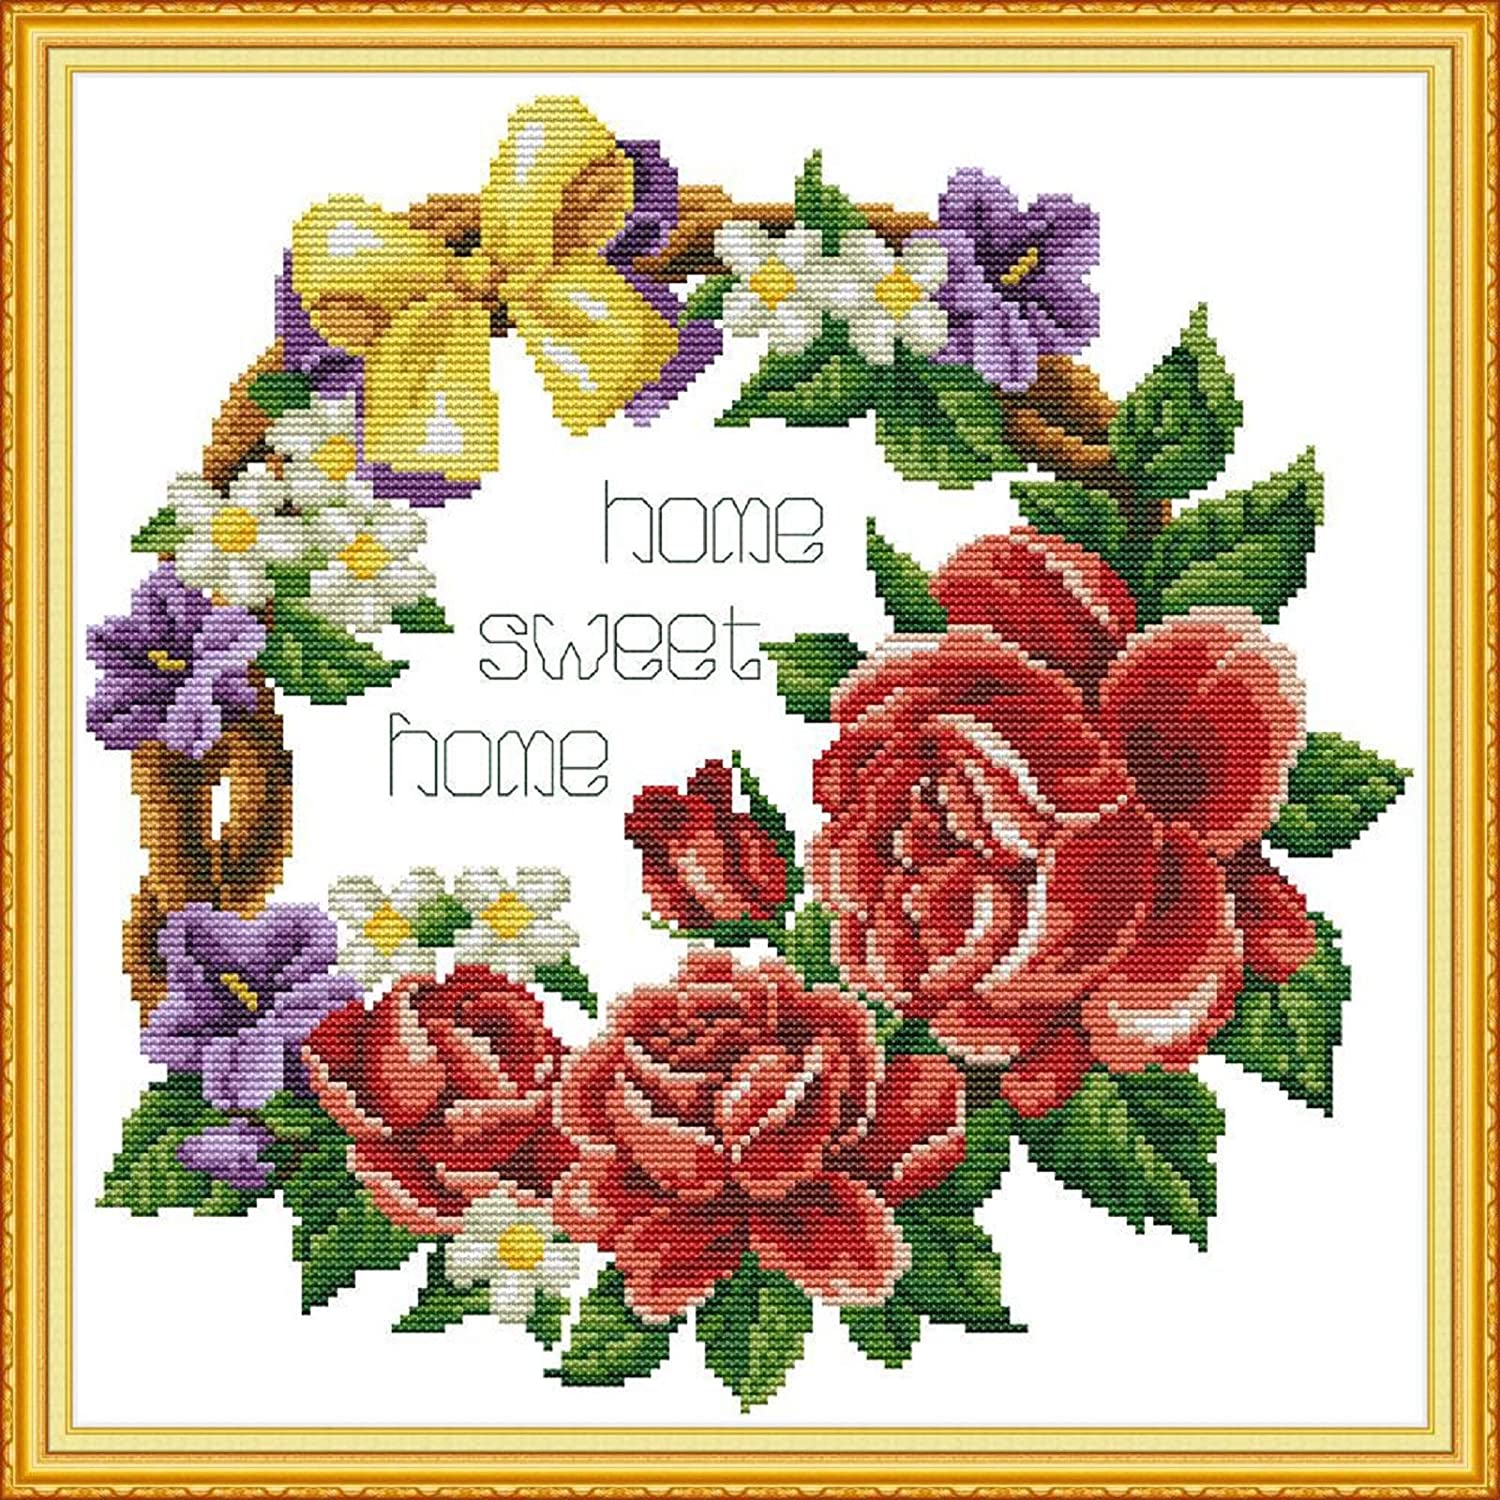 Funchey Stamped Cross Stitch Kits Beginners Full Range of Embroidery Starter Kits for Adults Printed Cross Stitching DIY kit 11CT-Sweet Home (Ring) 17.3x17.3 inch